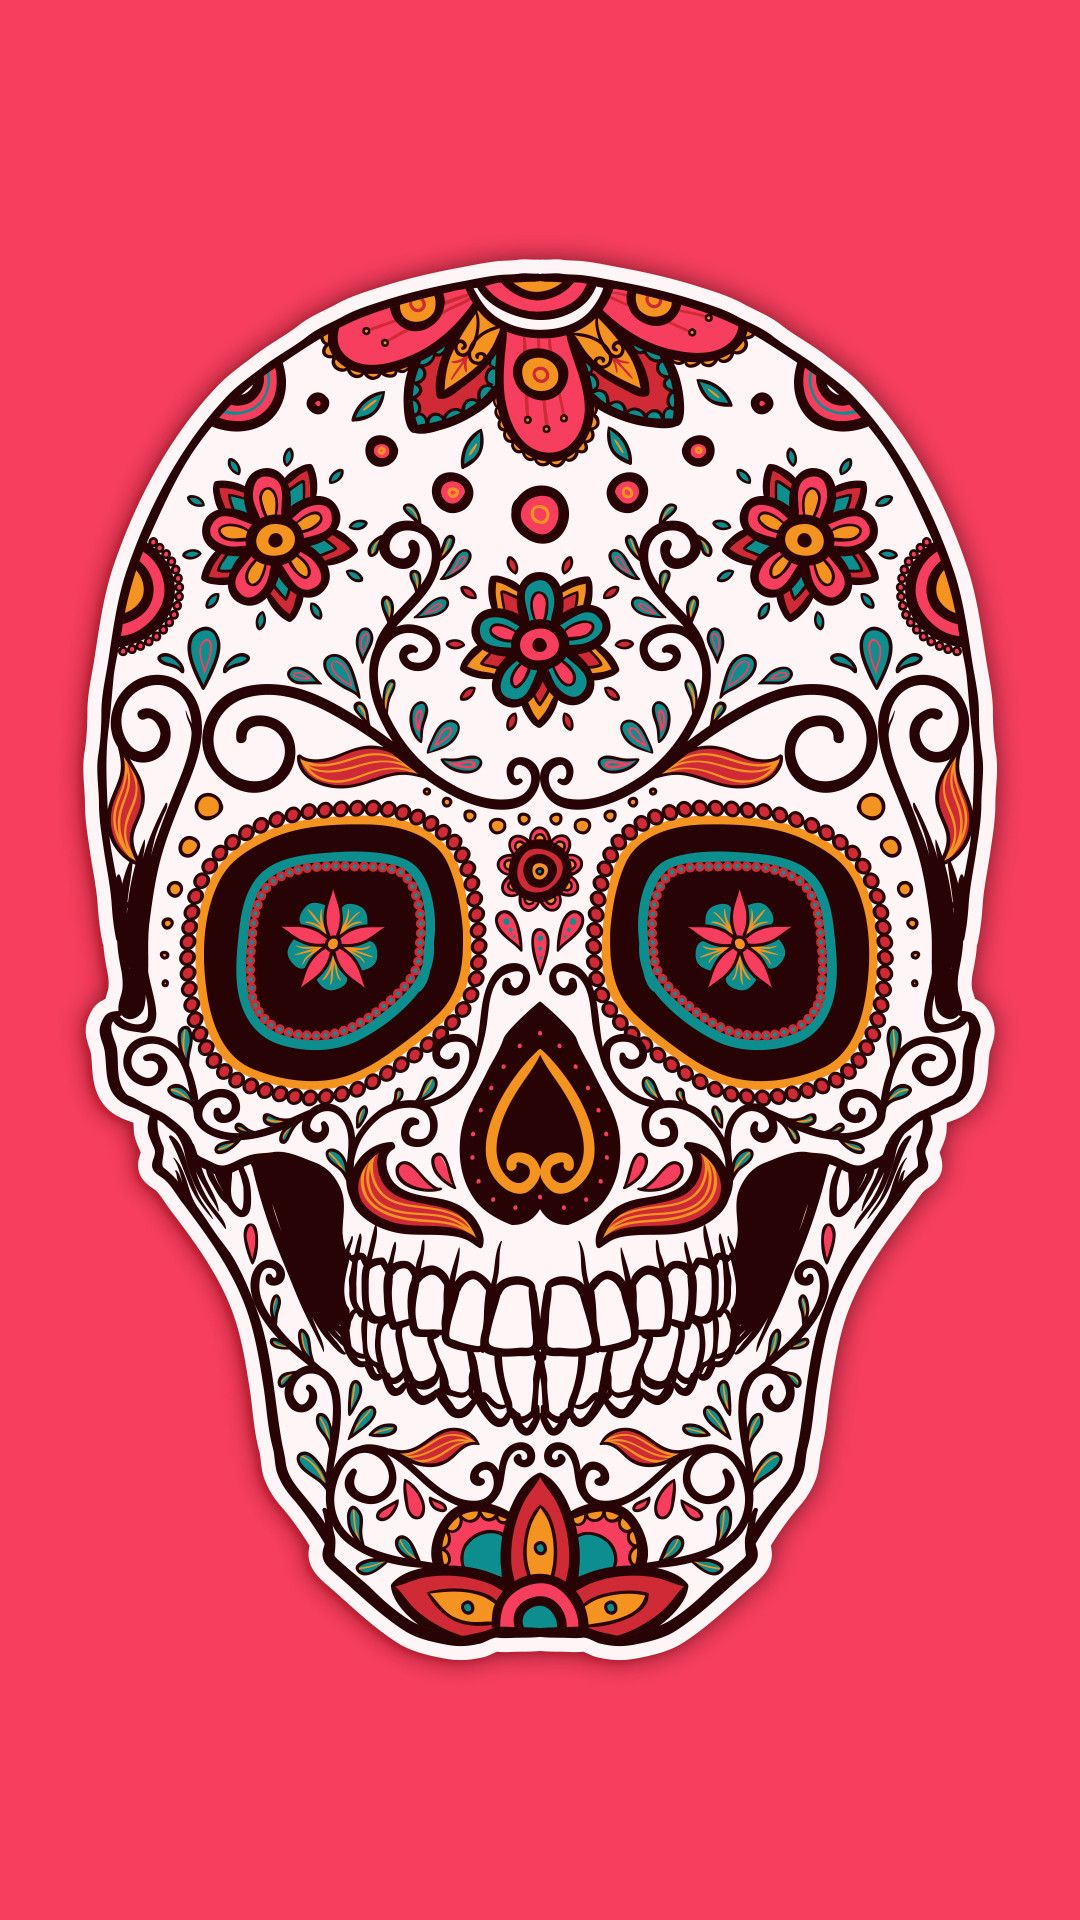 Trippy Sugar Background Picture In 2020 Sugar Skull Tattoos